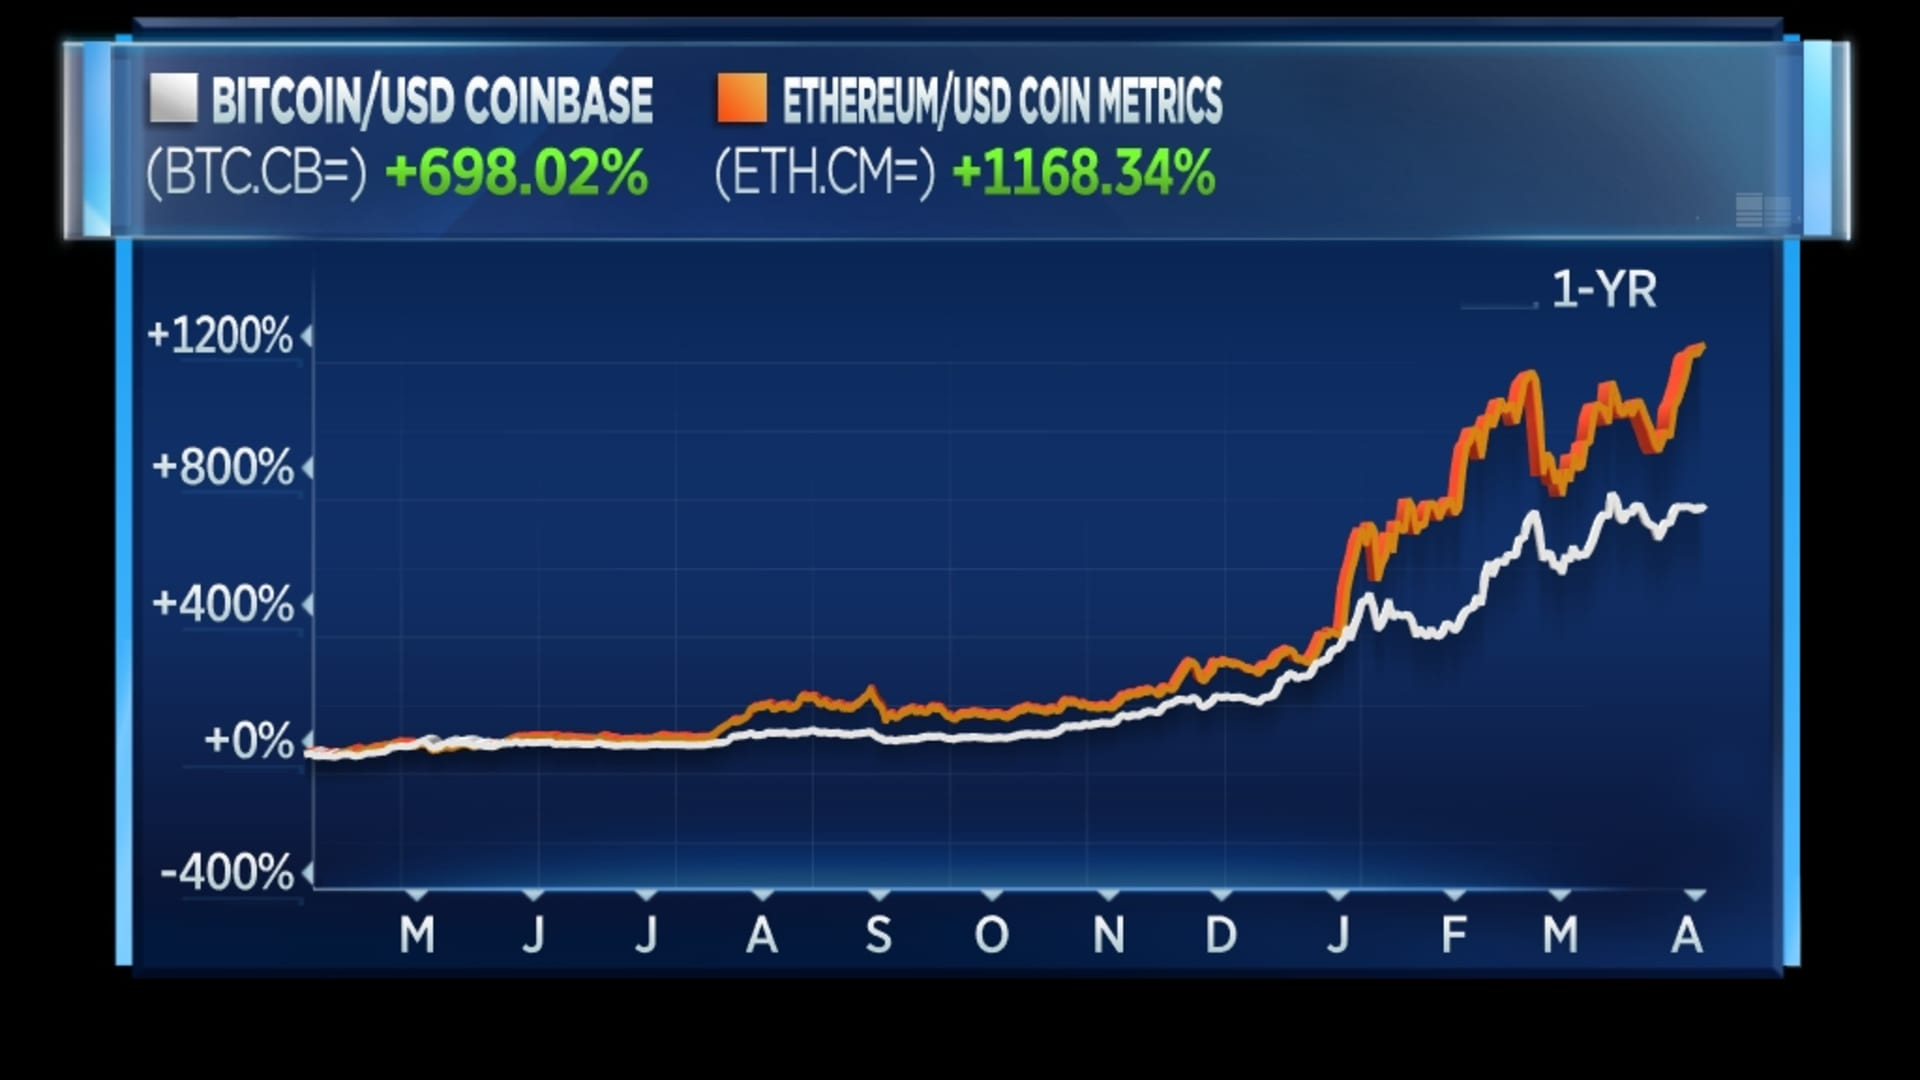 Bitcoin and ethereum in the past year